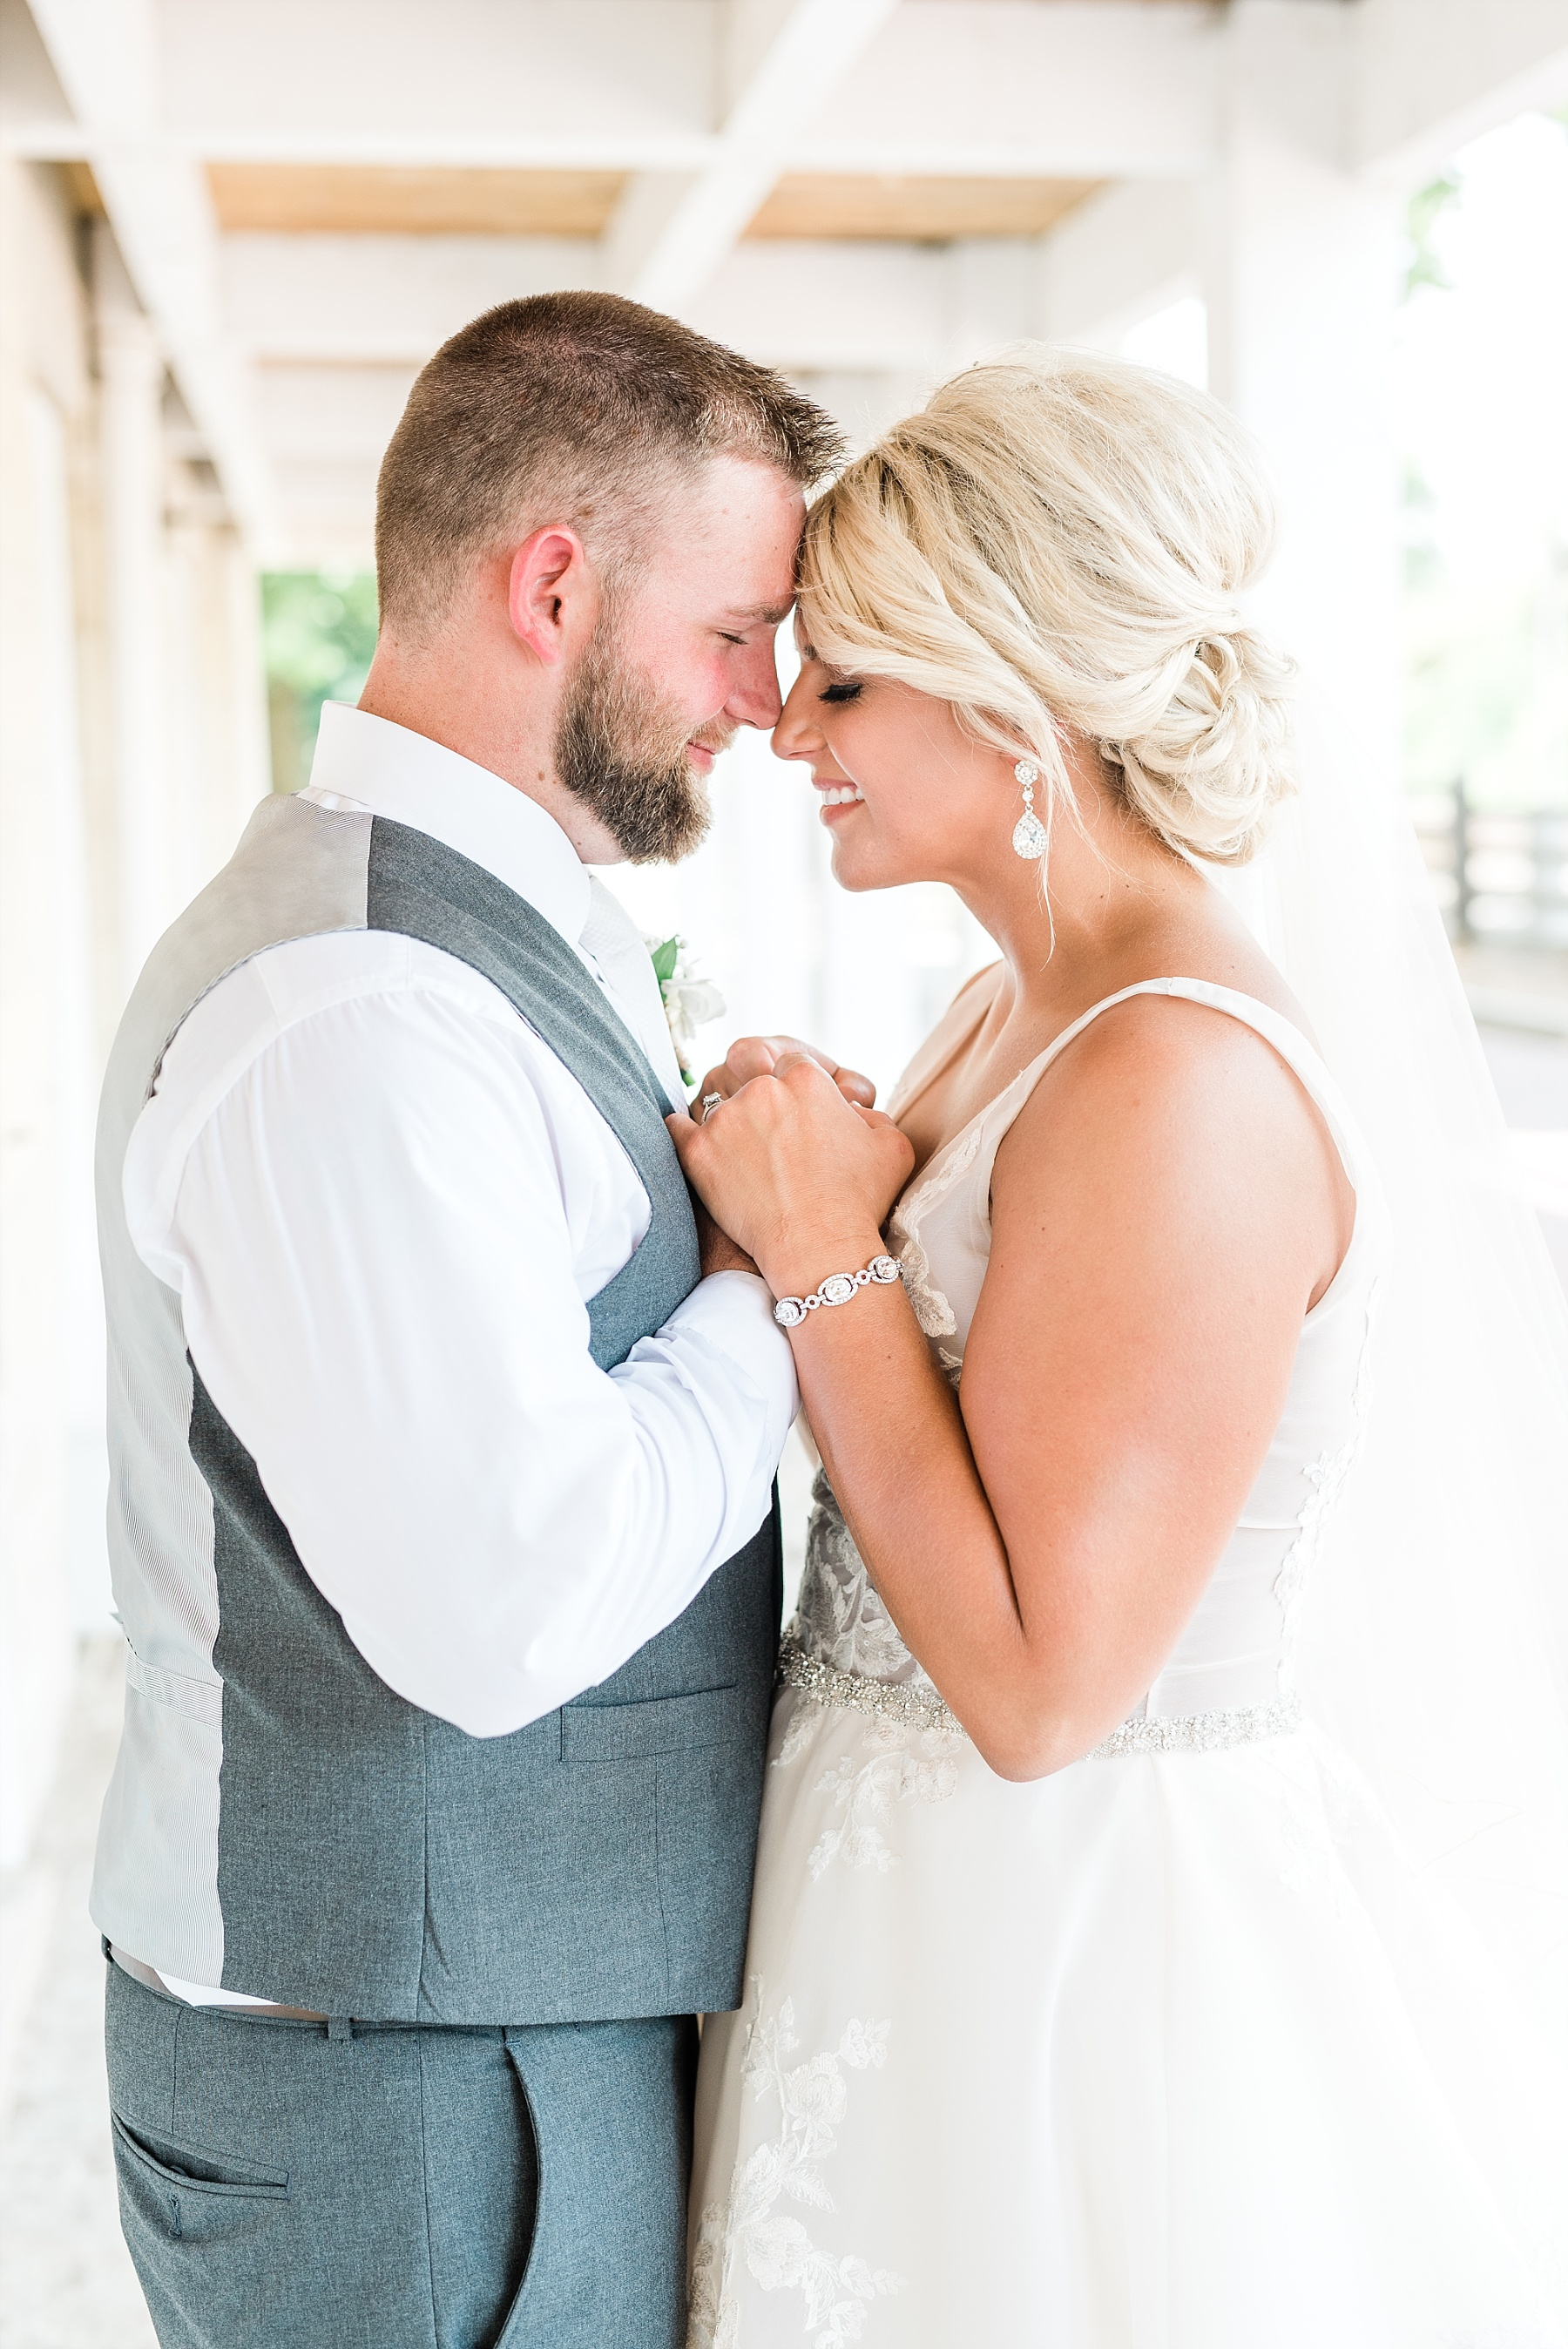 Rose Gold, White, and Greenery High Class Summer Wedding at The Millbottom in Downtown Jefferson City by Kelsi Kliethermes Photography_0029.jpg